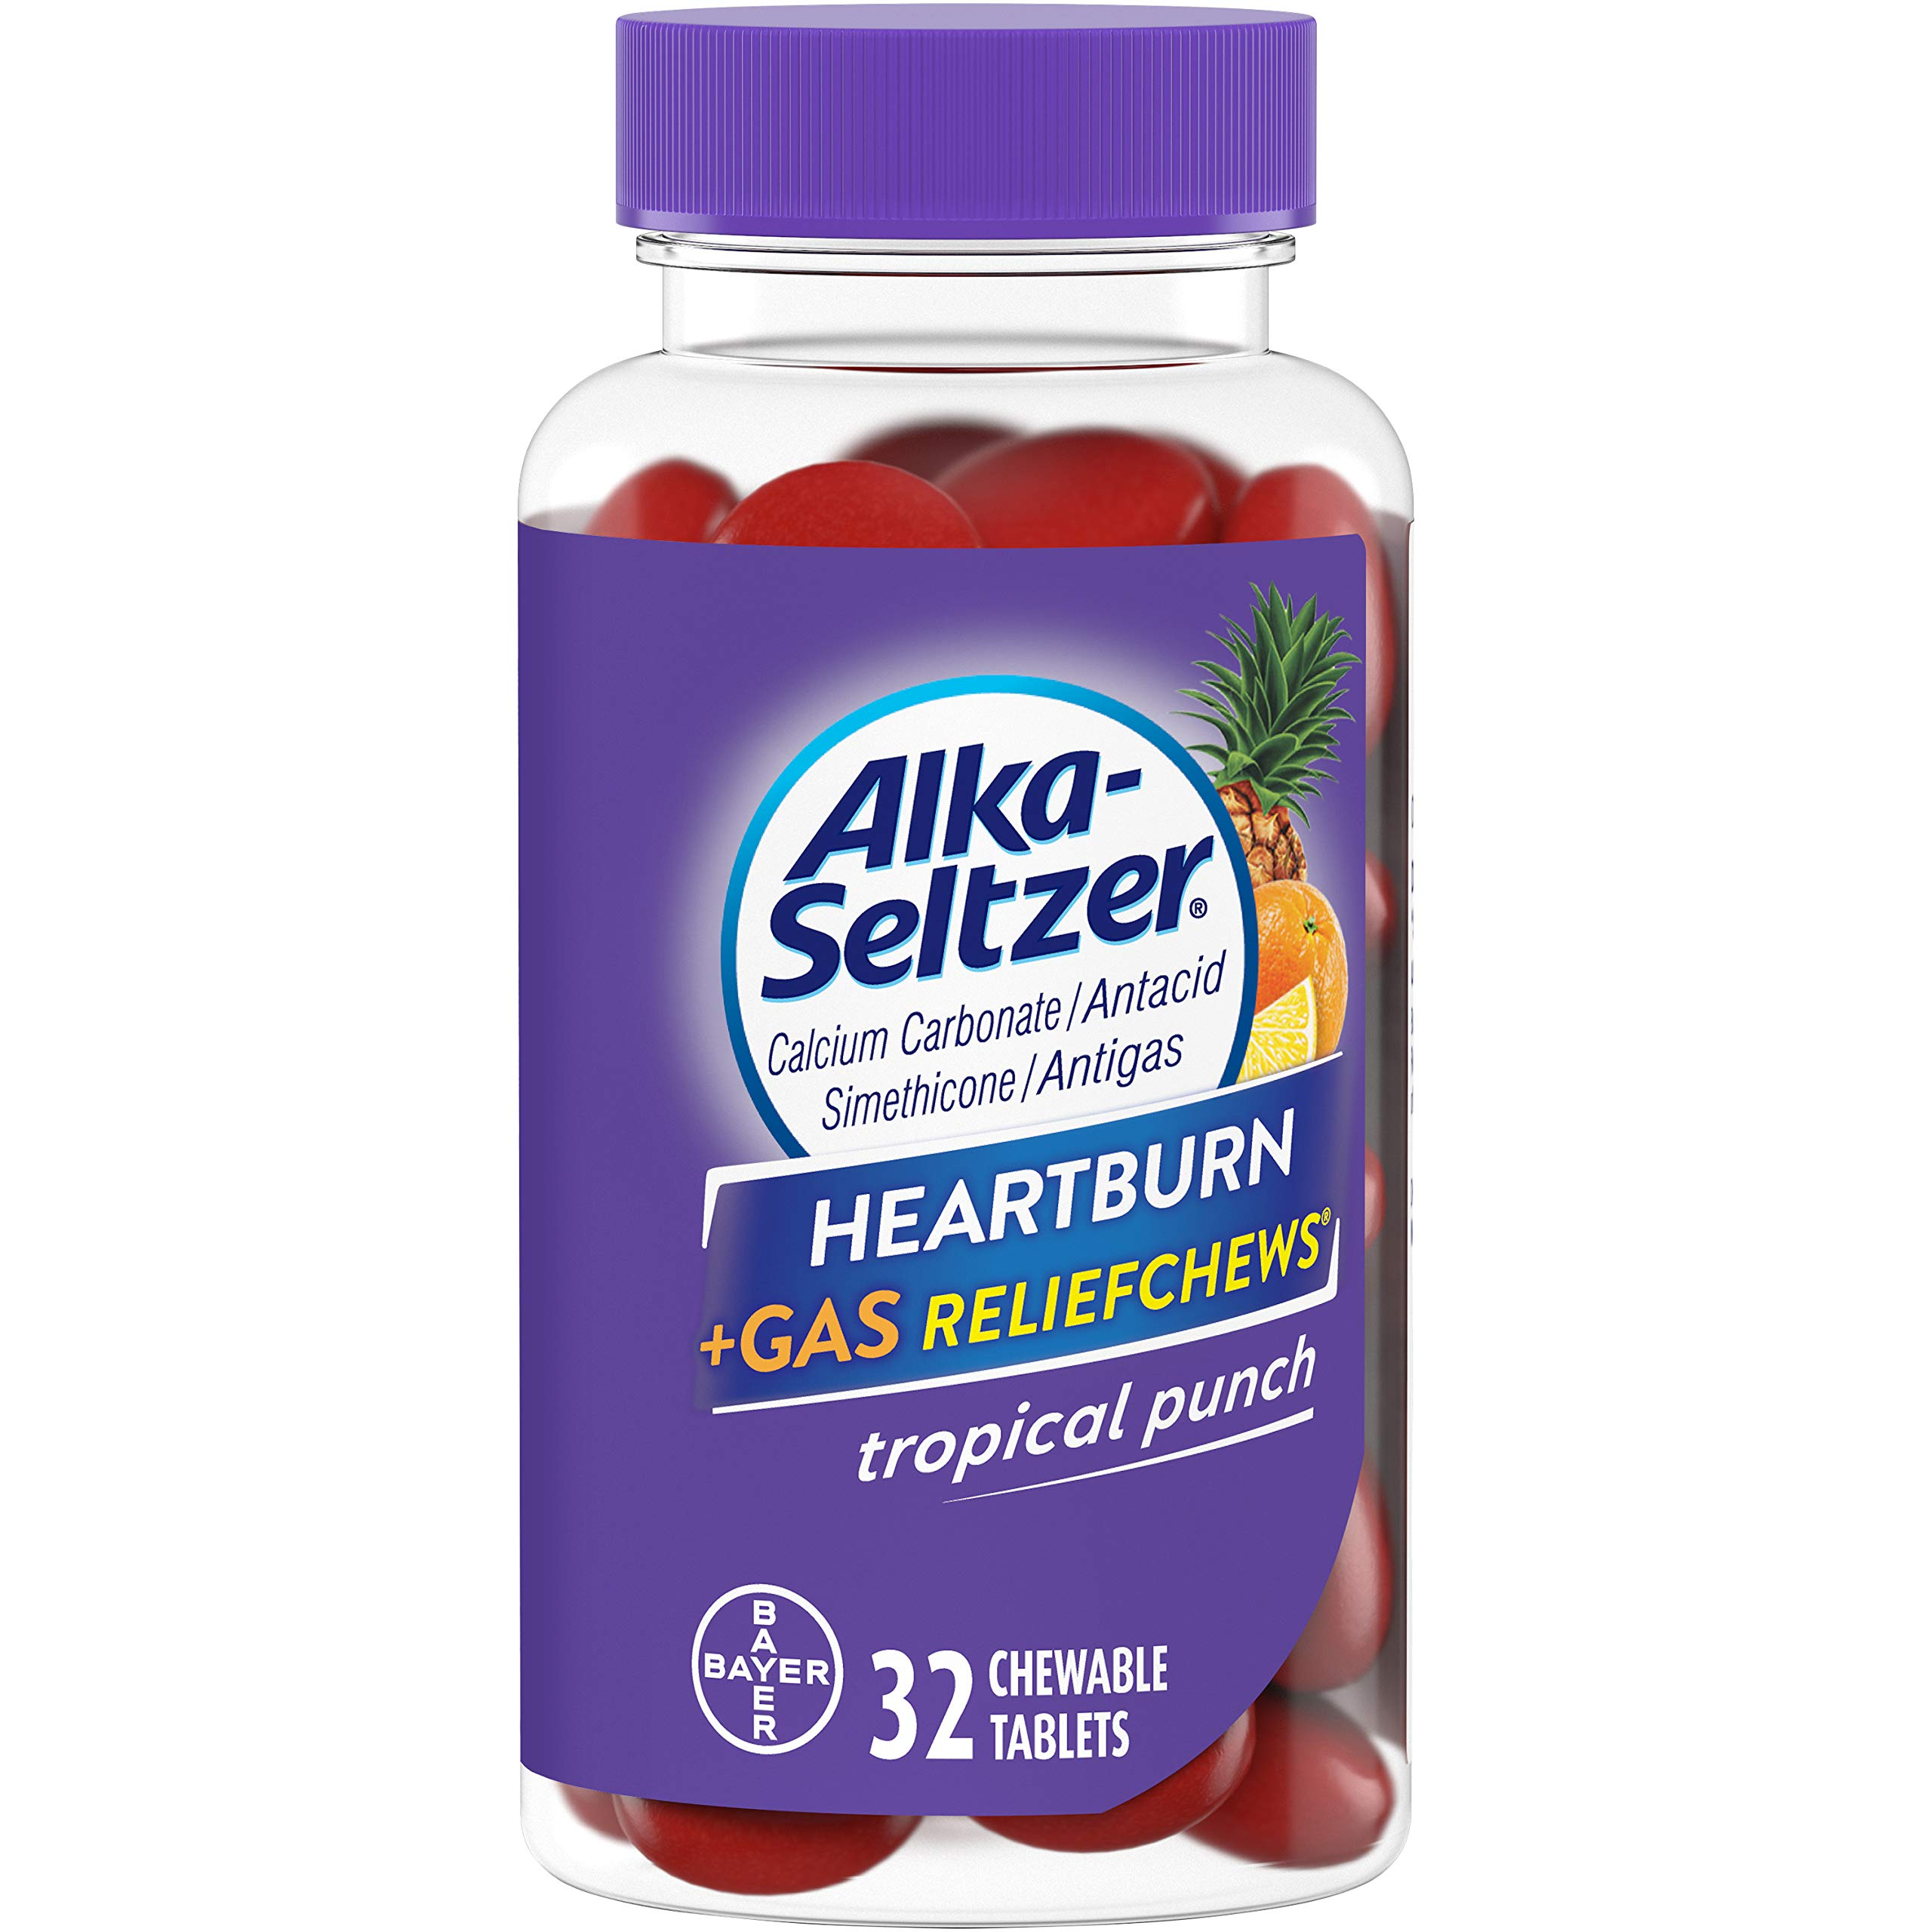 Alka-Seltzer Heartburn + Gas ReliefChews - Relief of Heartburn, Gas, Acid Indigestion, and Sour Stomach - Tropical Punch Flavors - 32 Count